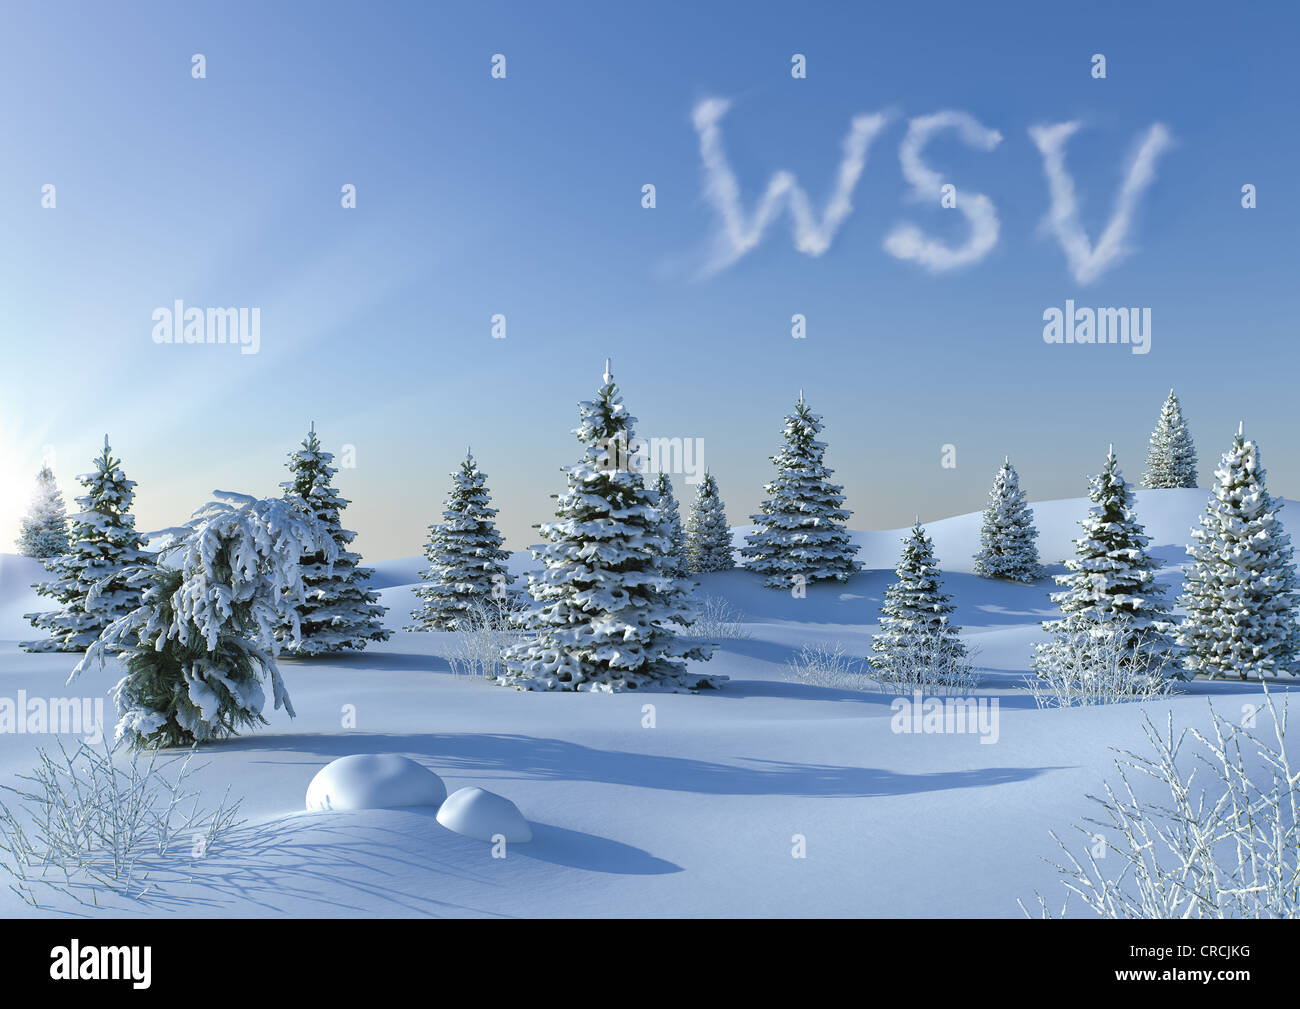 Winter landscape with WSV written in the sky, symbolic image for the German end of winter sales, illustration - Stock Image